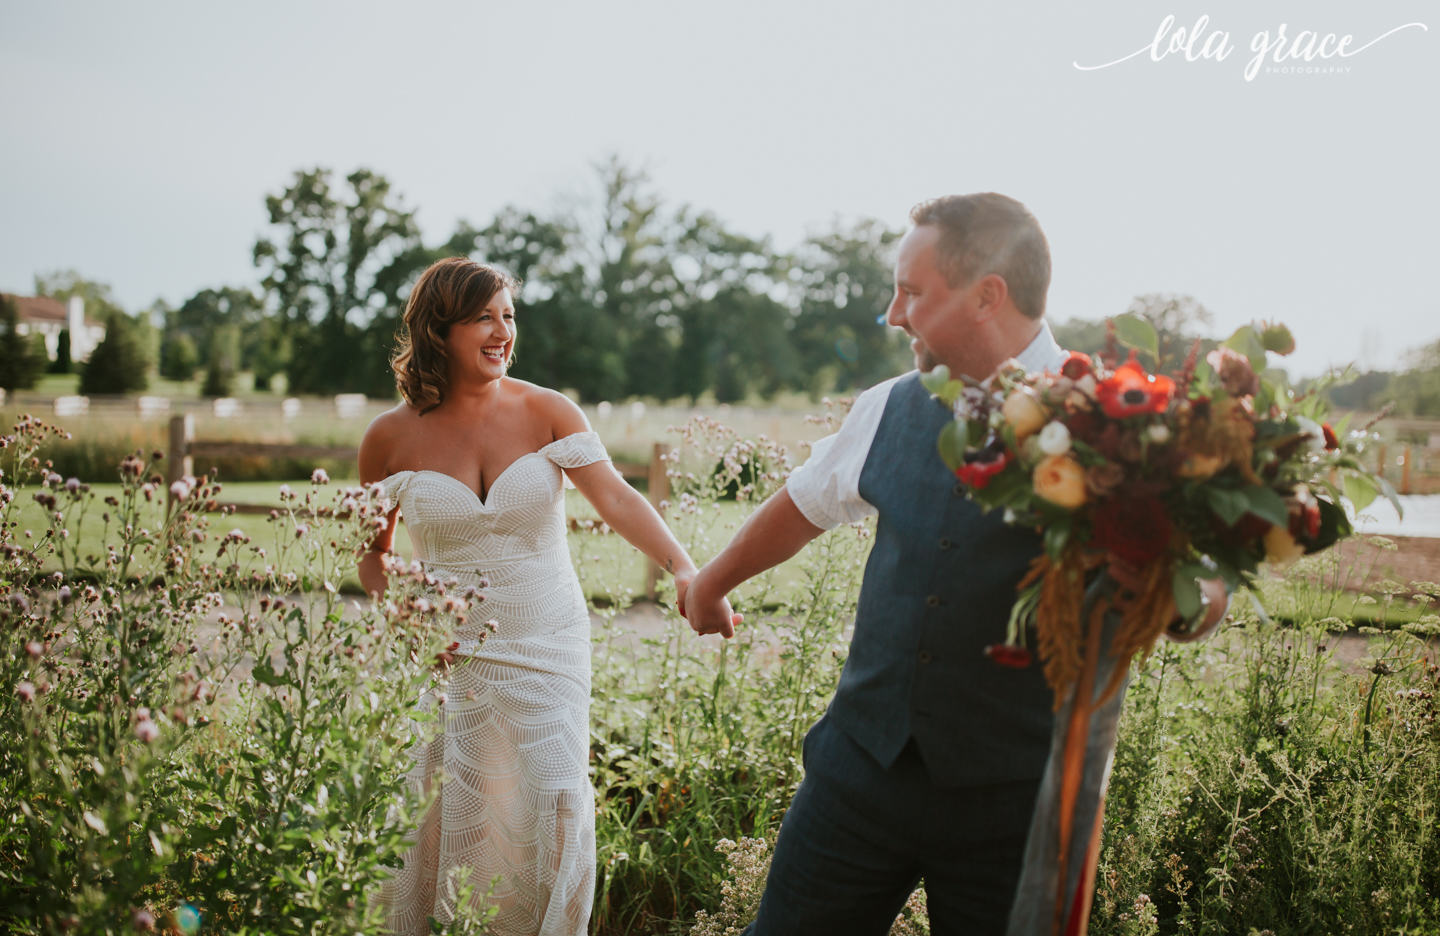 lola-grace-photography-michigan-fouth-of-july-wedding-conman-farms-62.jpg